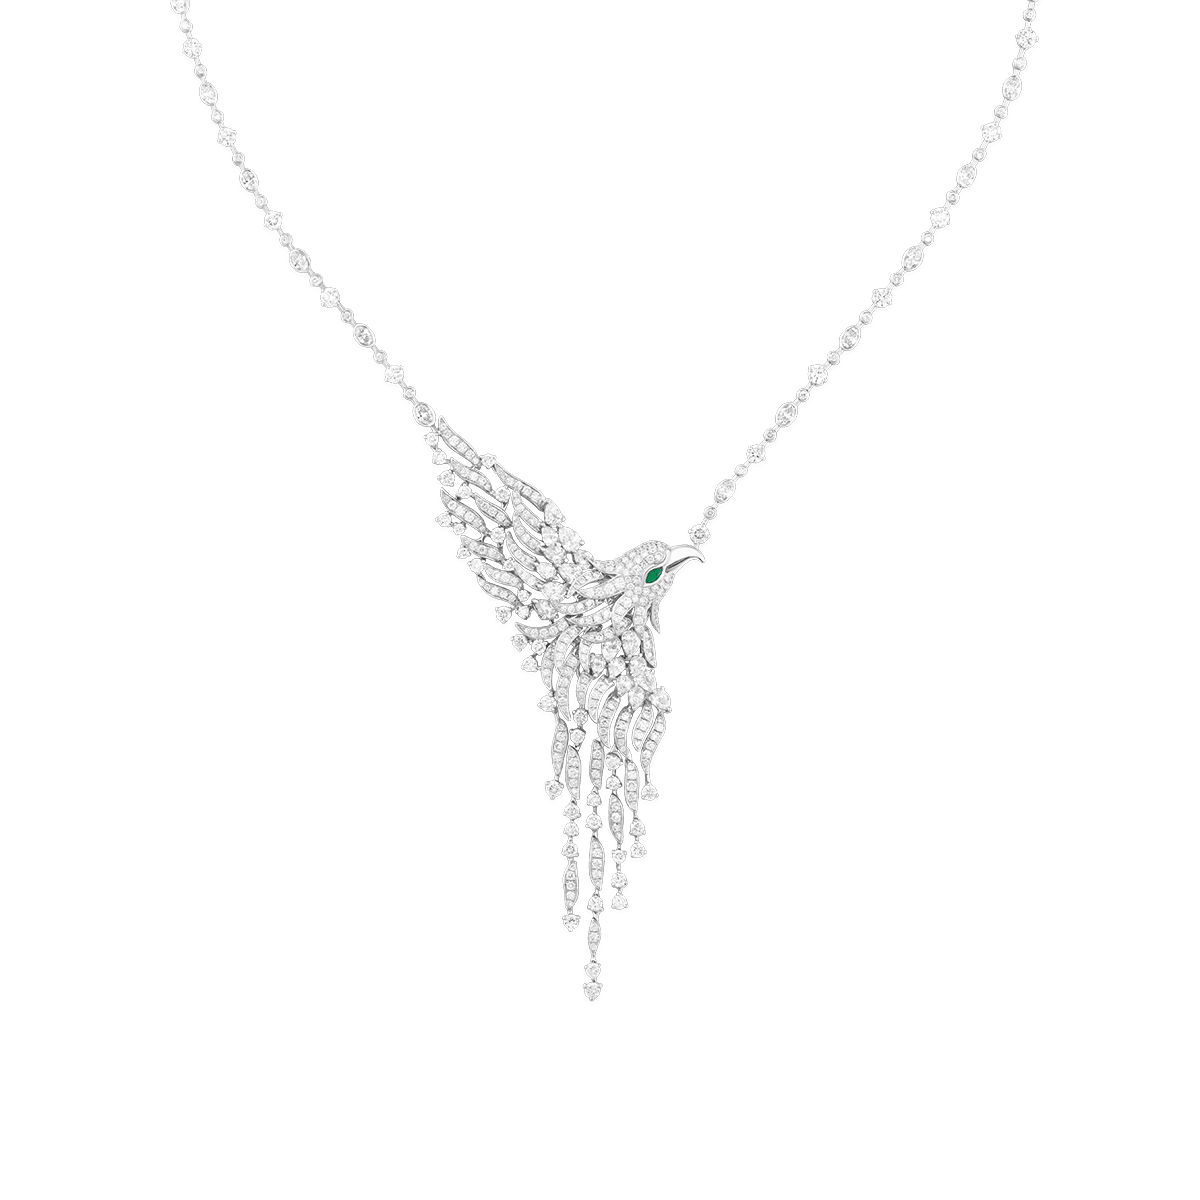 Sartoro Falcon Necklace FALC-N1WG